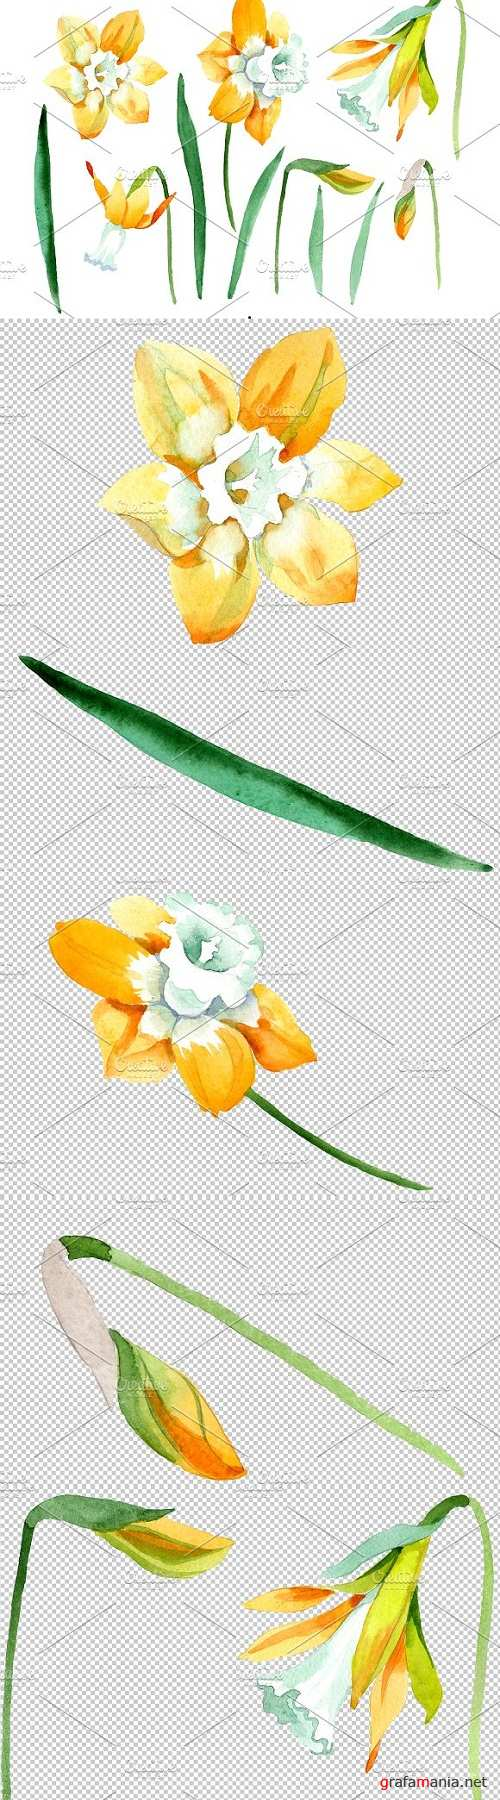 Yellow Narcissus Watercolor png - 3499328